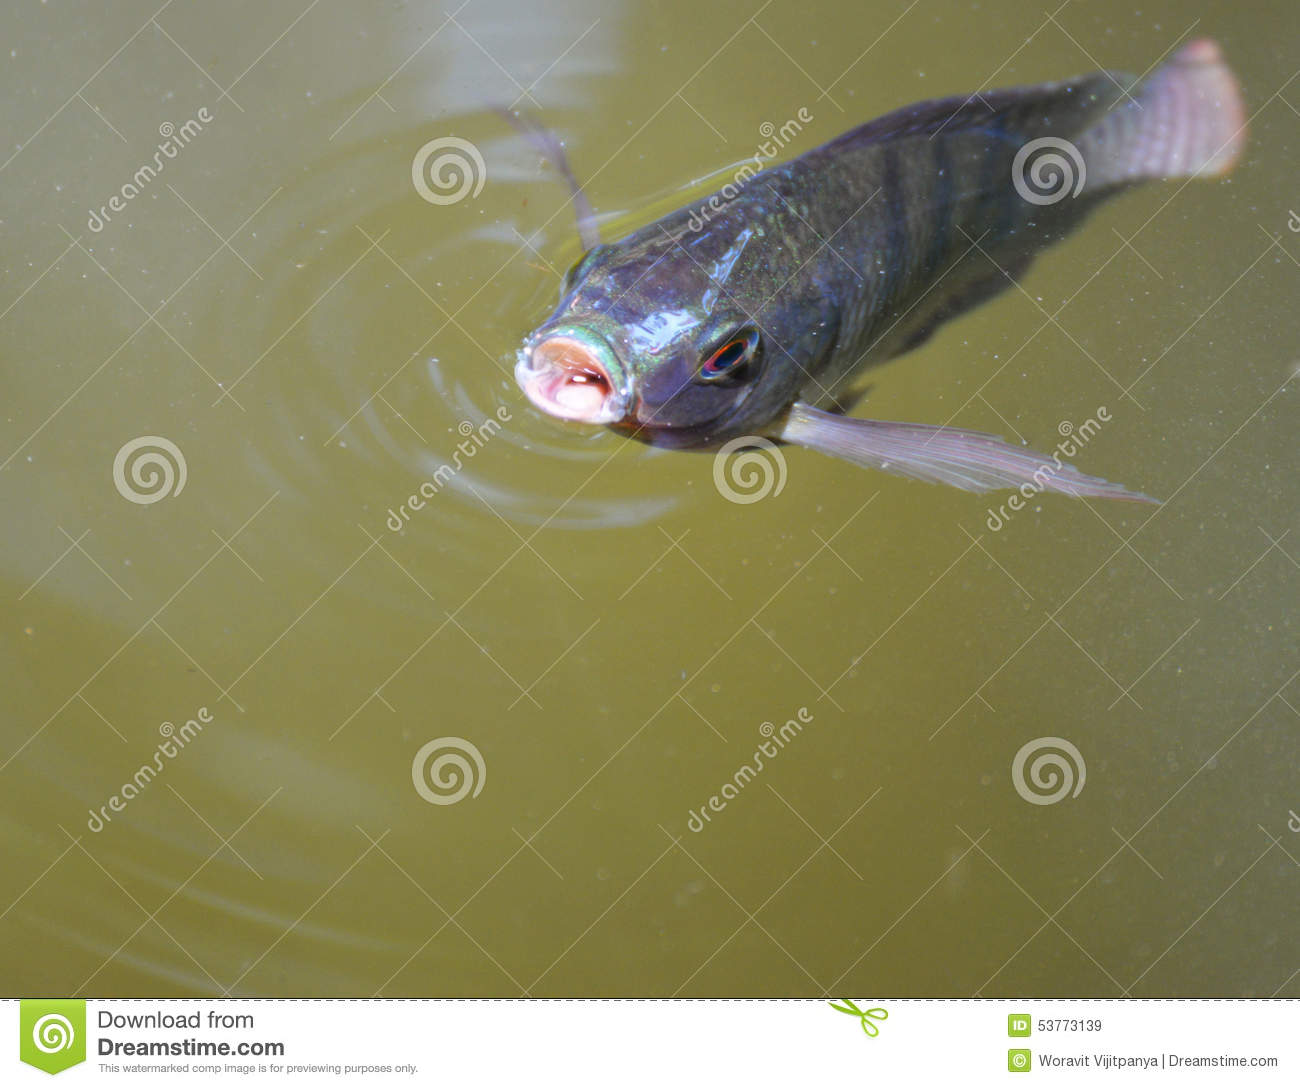 Tilapia fish stock photo image 53773139 for Tilapia swimming